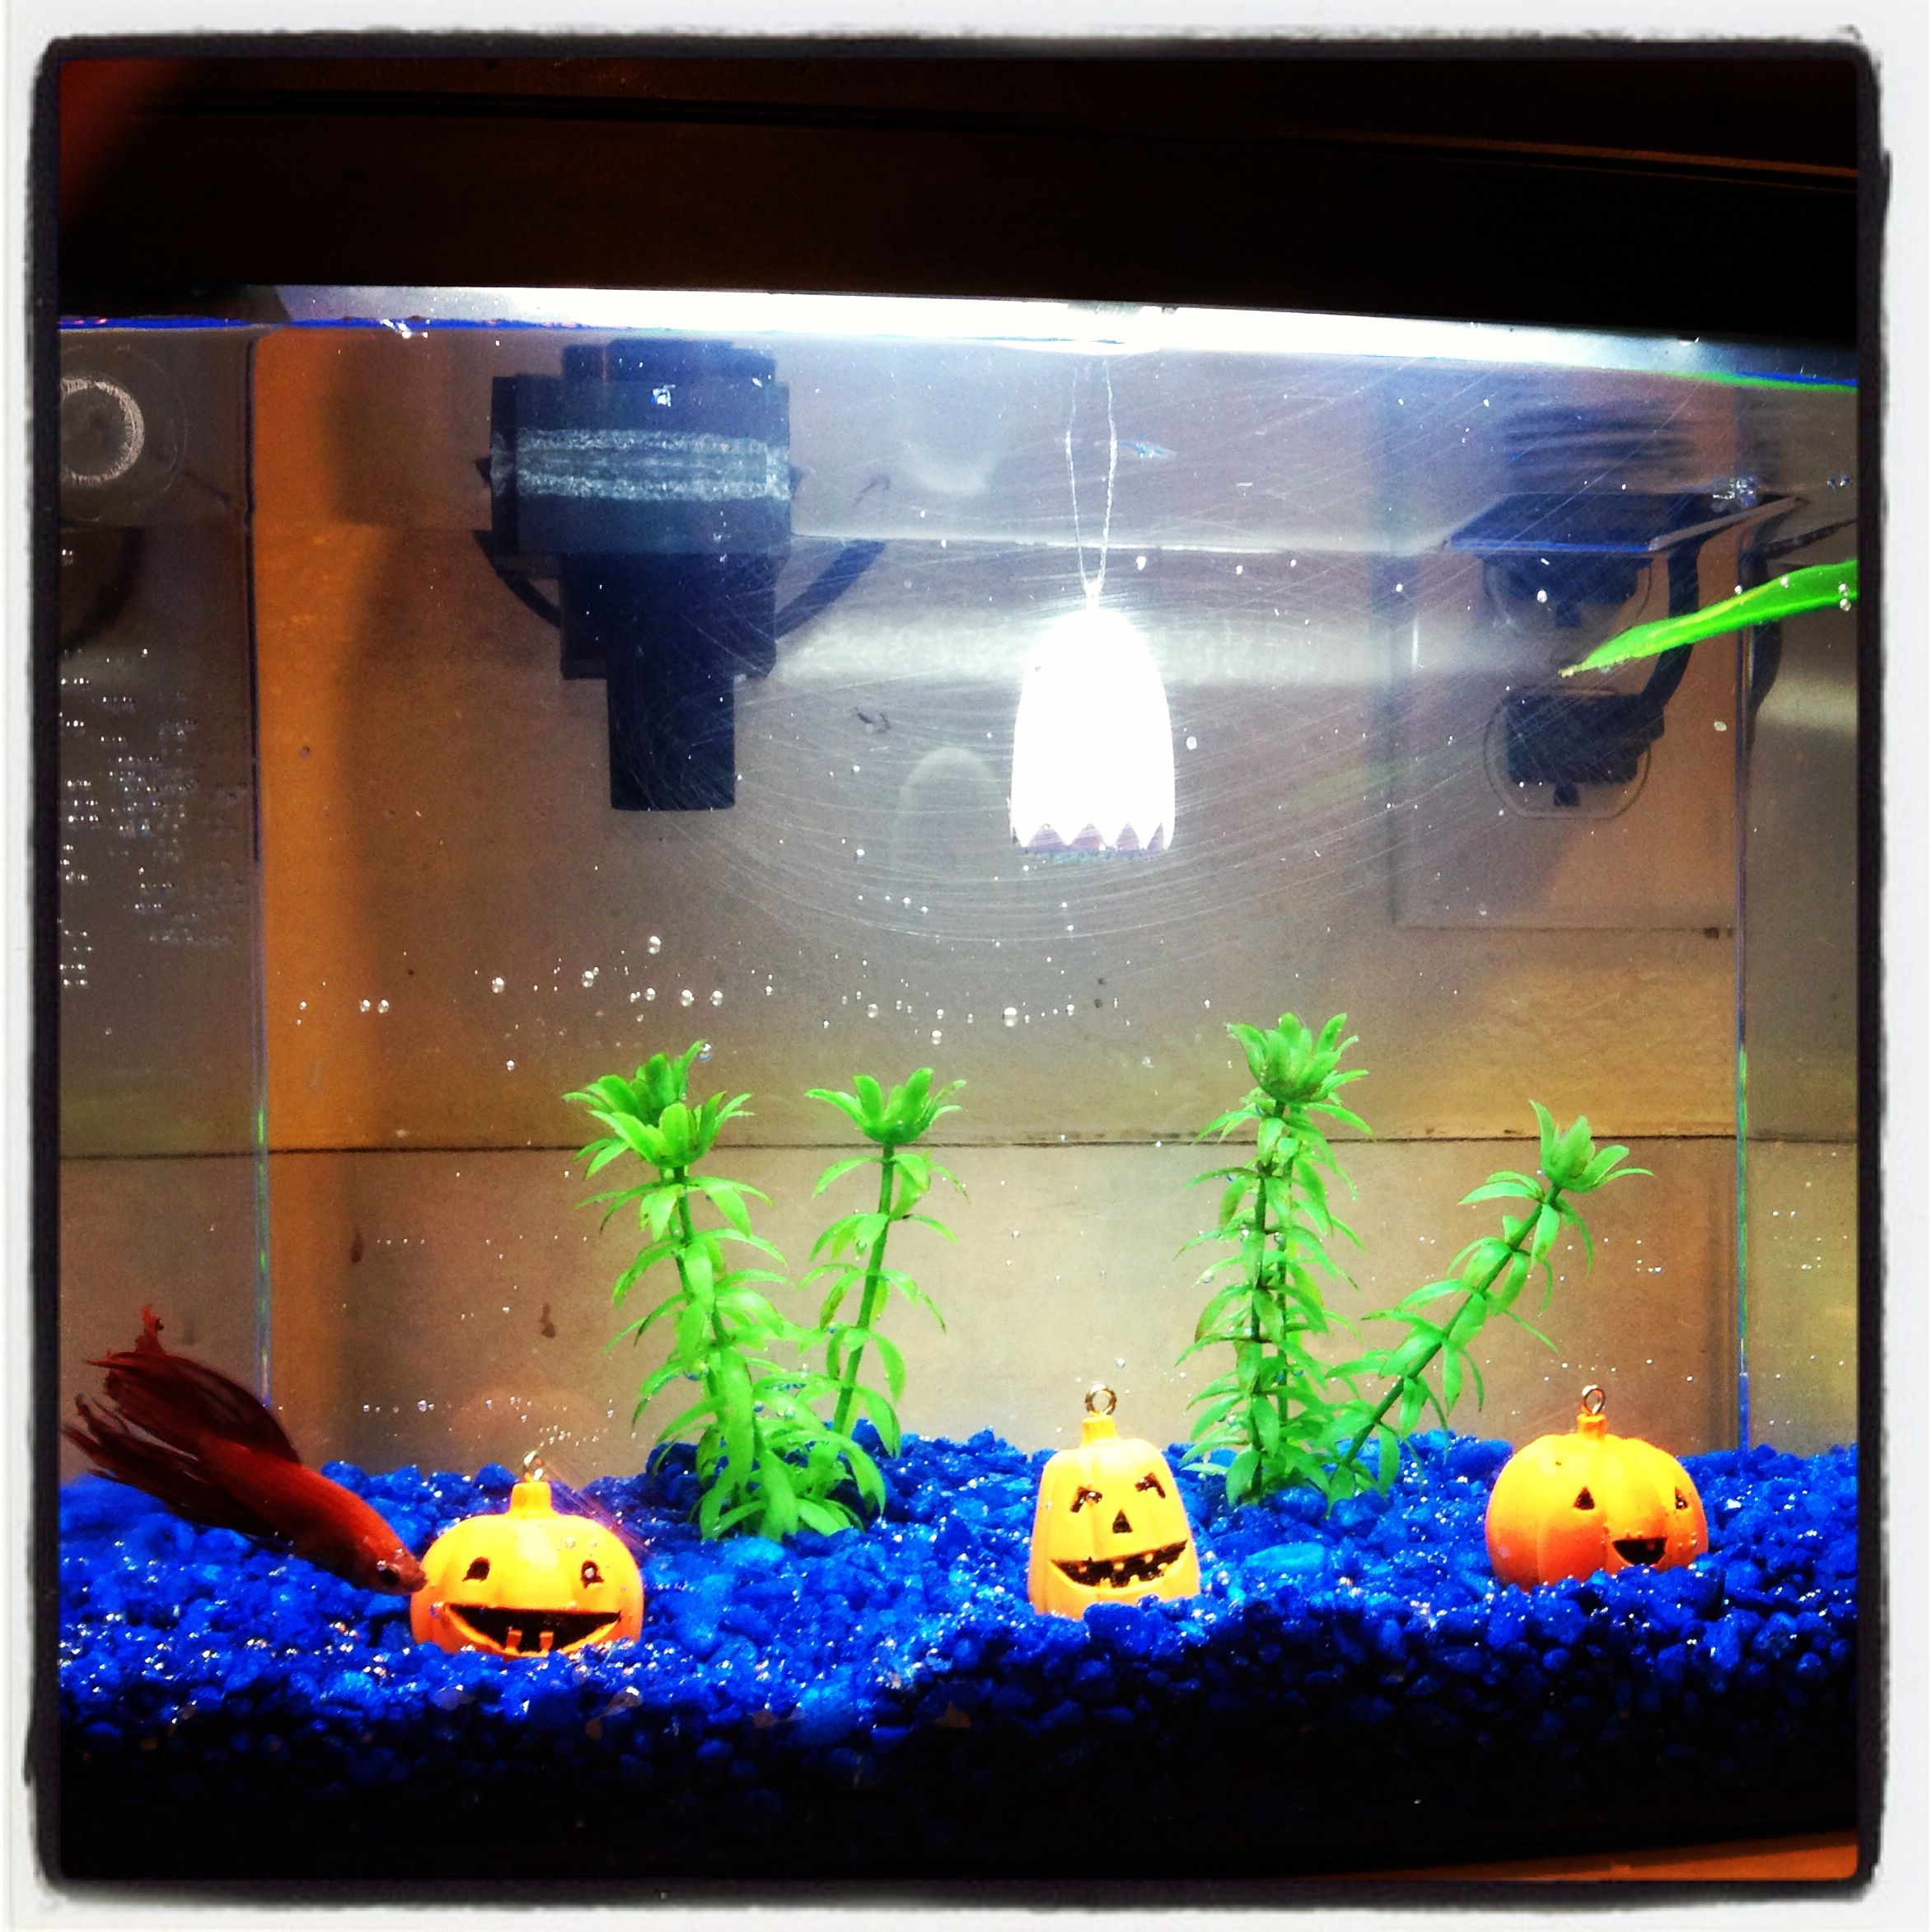 Zombie fish tank youtube - Fish Tank Halloween Decor This Makes Me Want A Fish